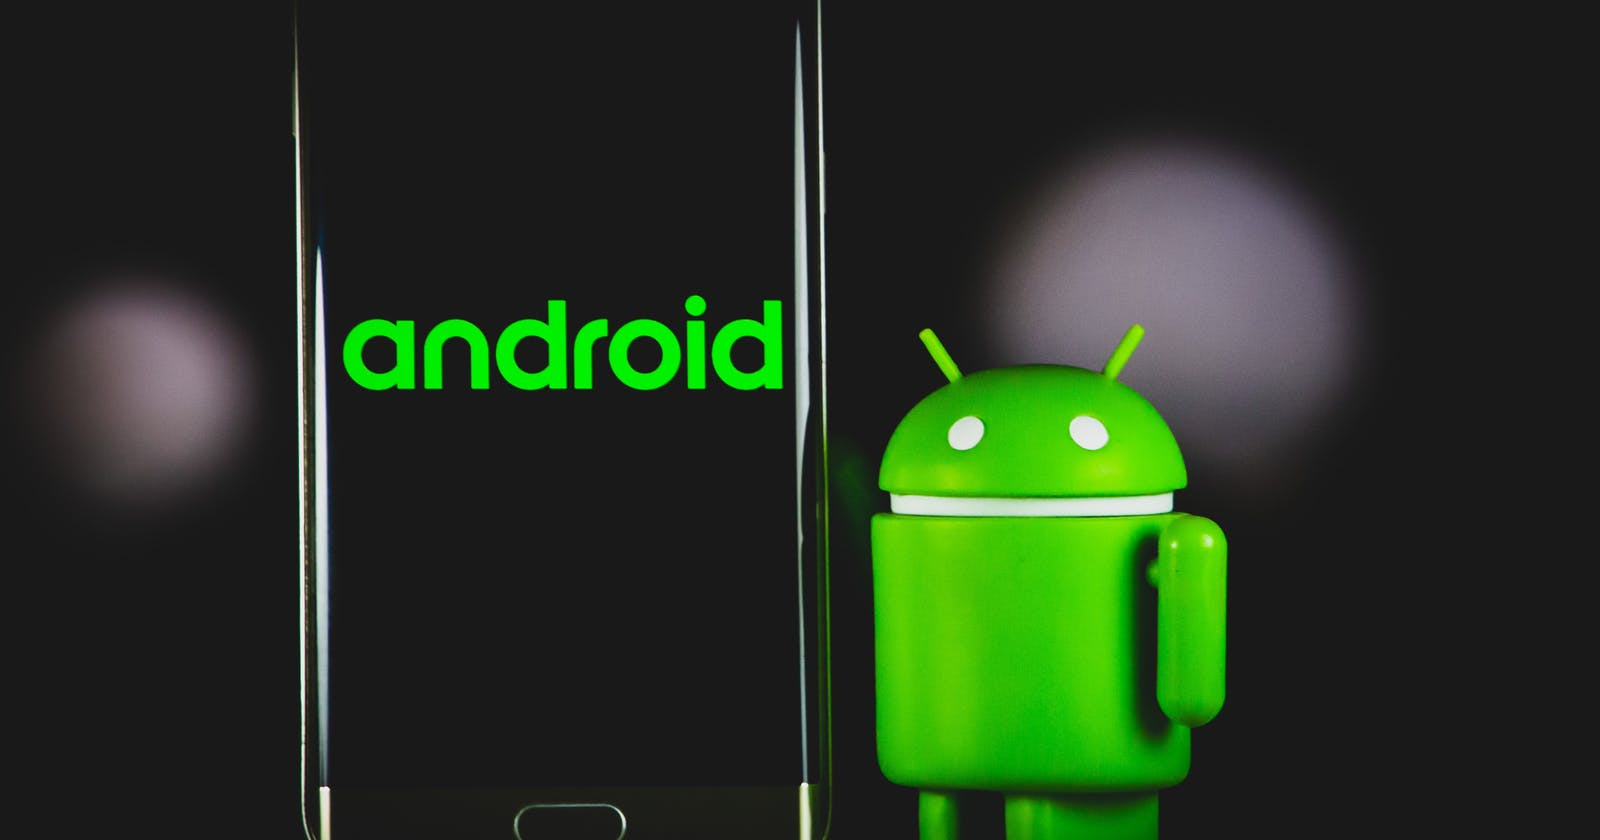 December 2017 Android Code Trials